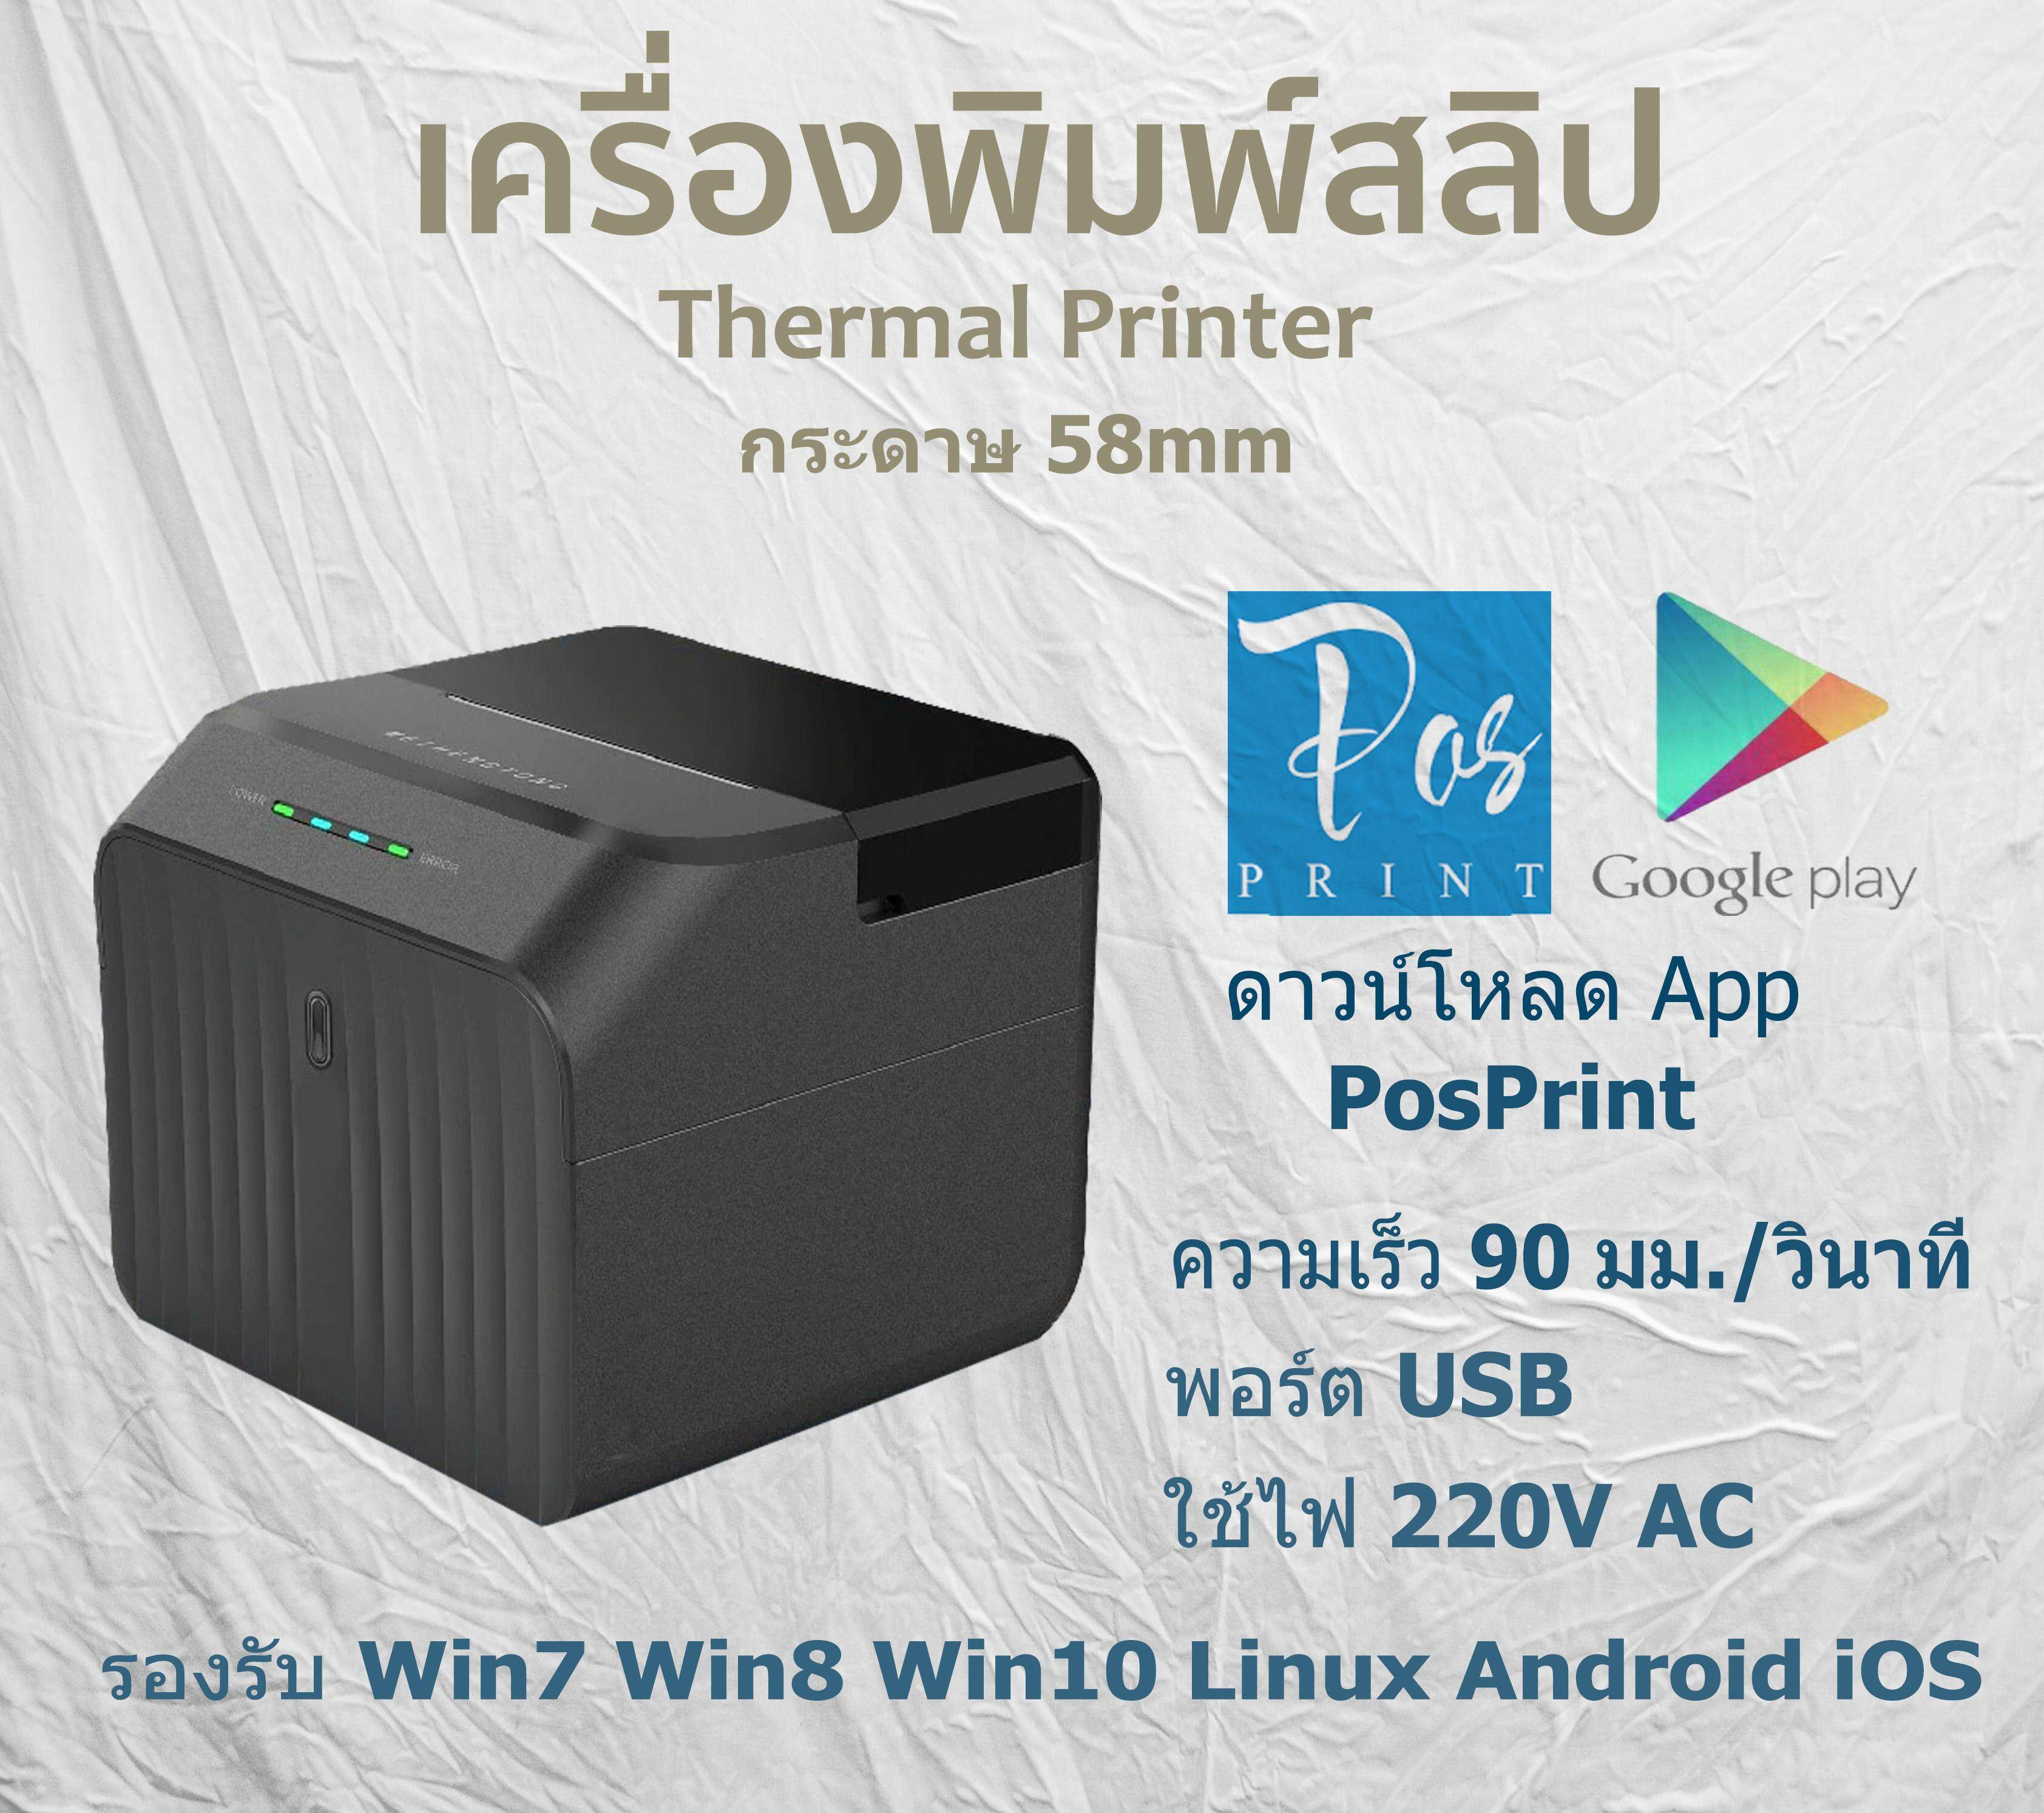 Posprint 58mm Billing Printer Thermal Printer Direct Factory Made 2inch Wired Desktop Thermal Receipt Printer Mht-P58a For Pos System เครื่องพิมพ์ความร้อน 58 มม By Fay.th.